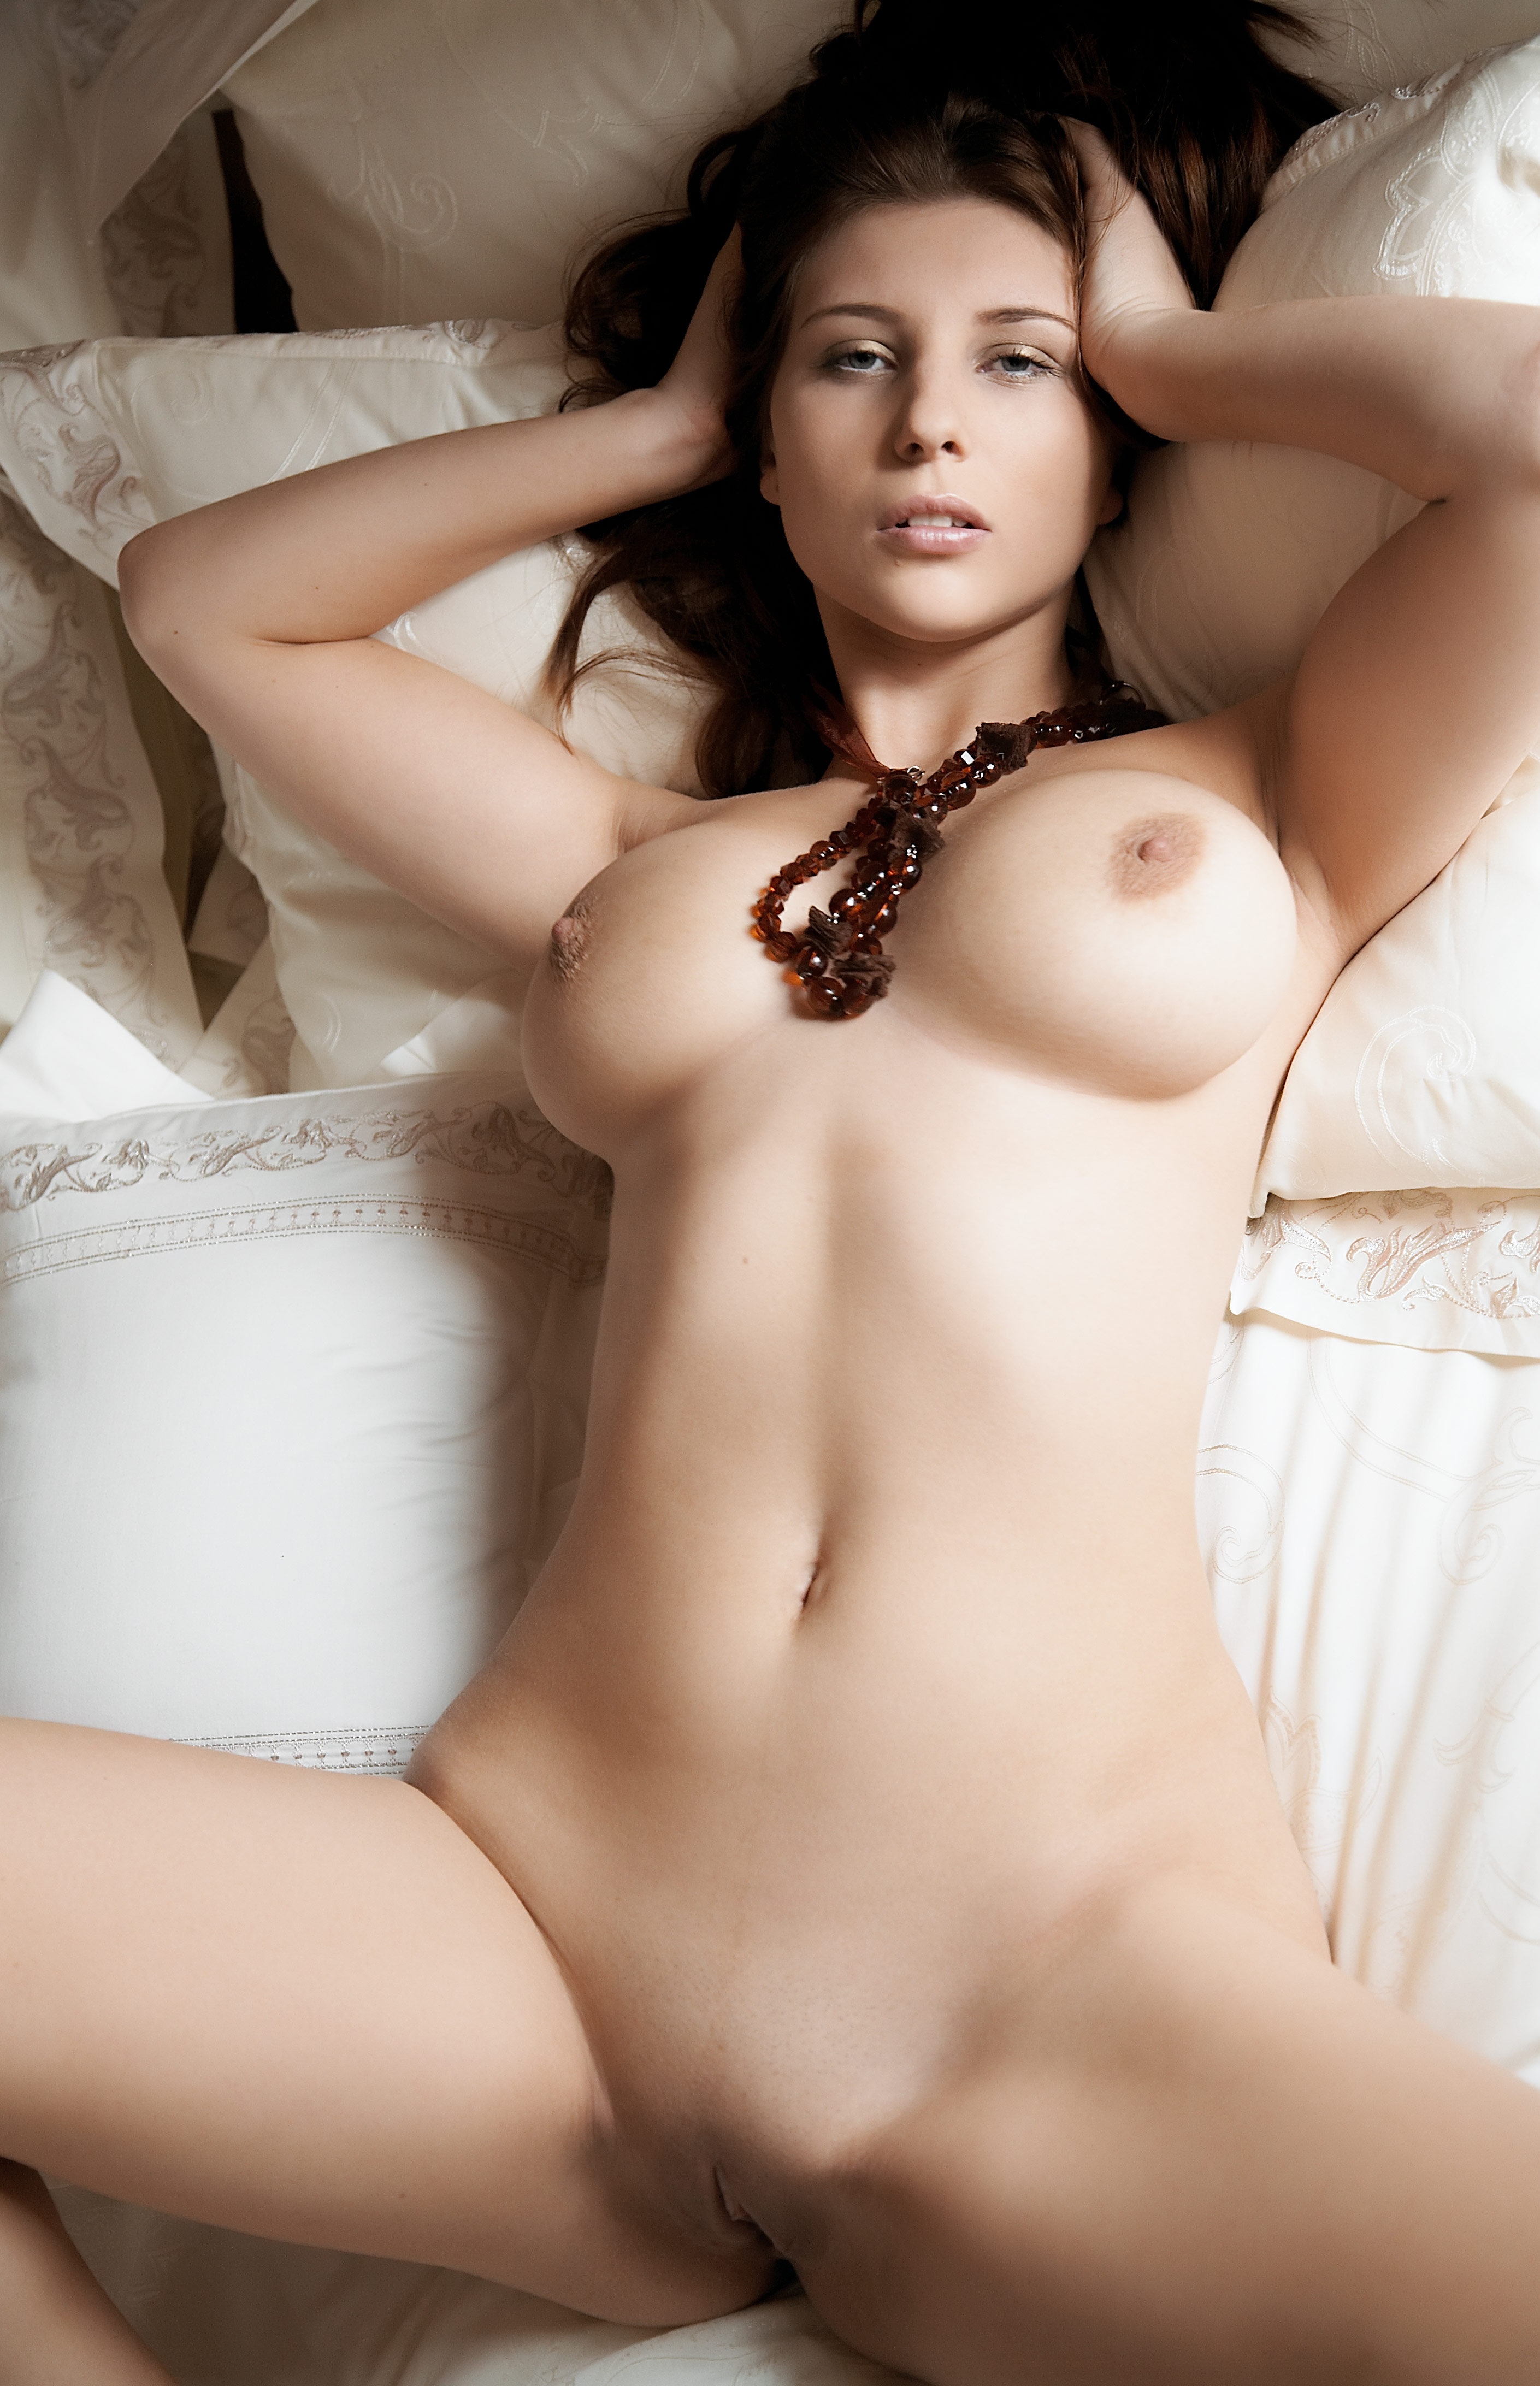 Hot sexy nude body